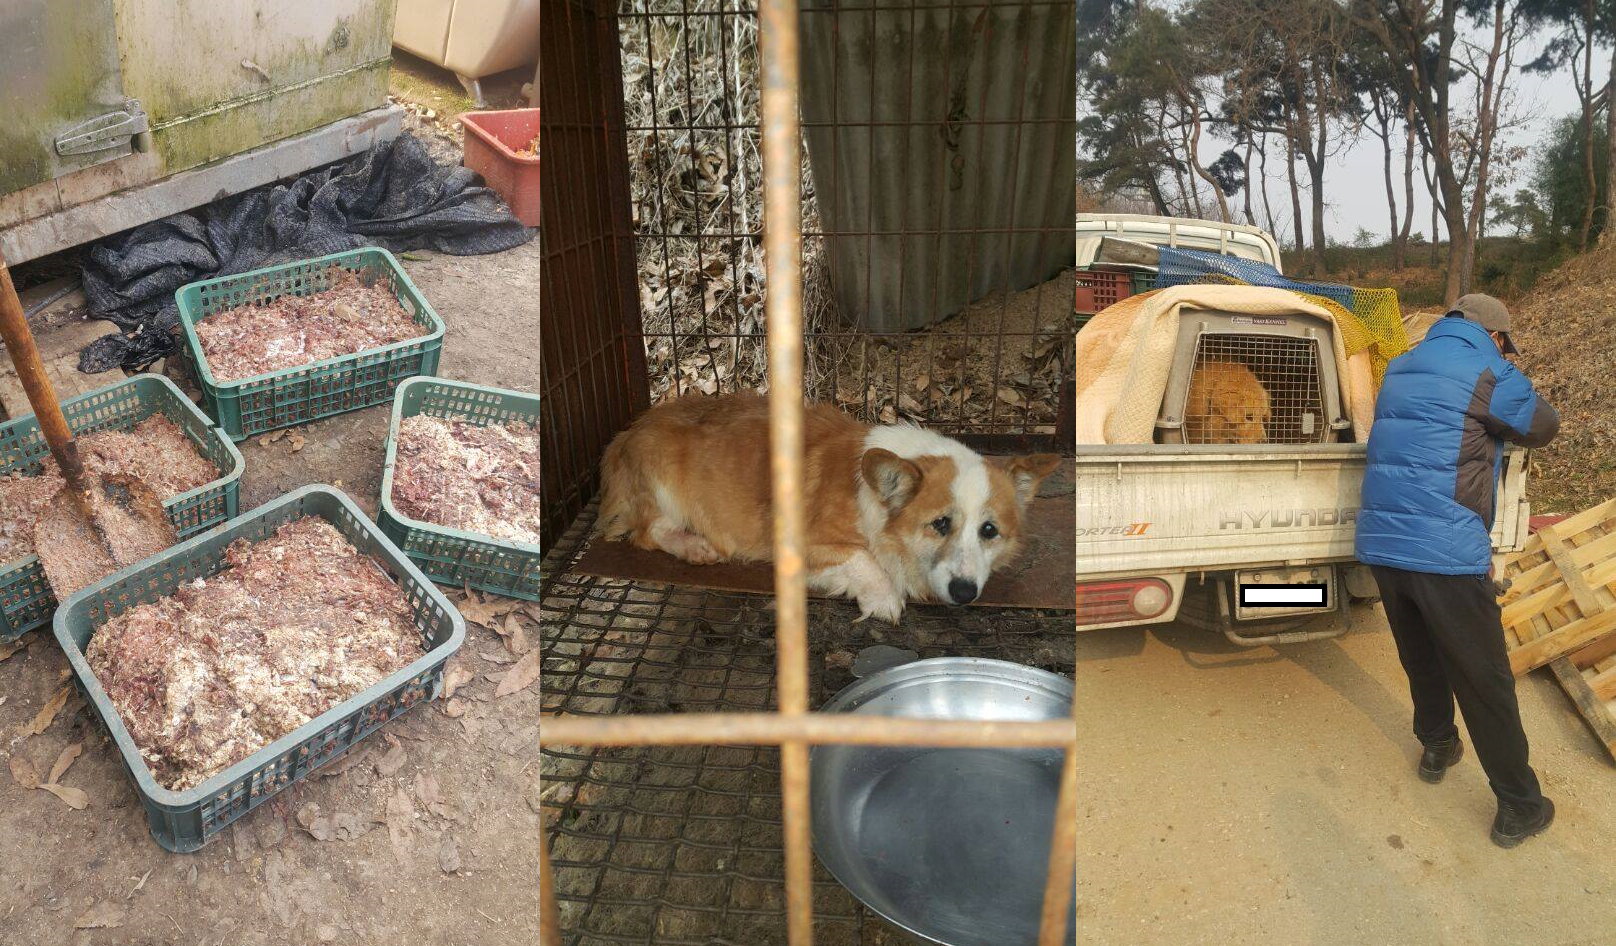 Call for Action: Illegal puppy mill/dog farm in Nonsan, Deokpyeong-ri.